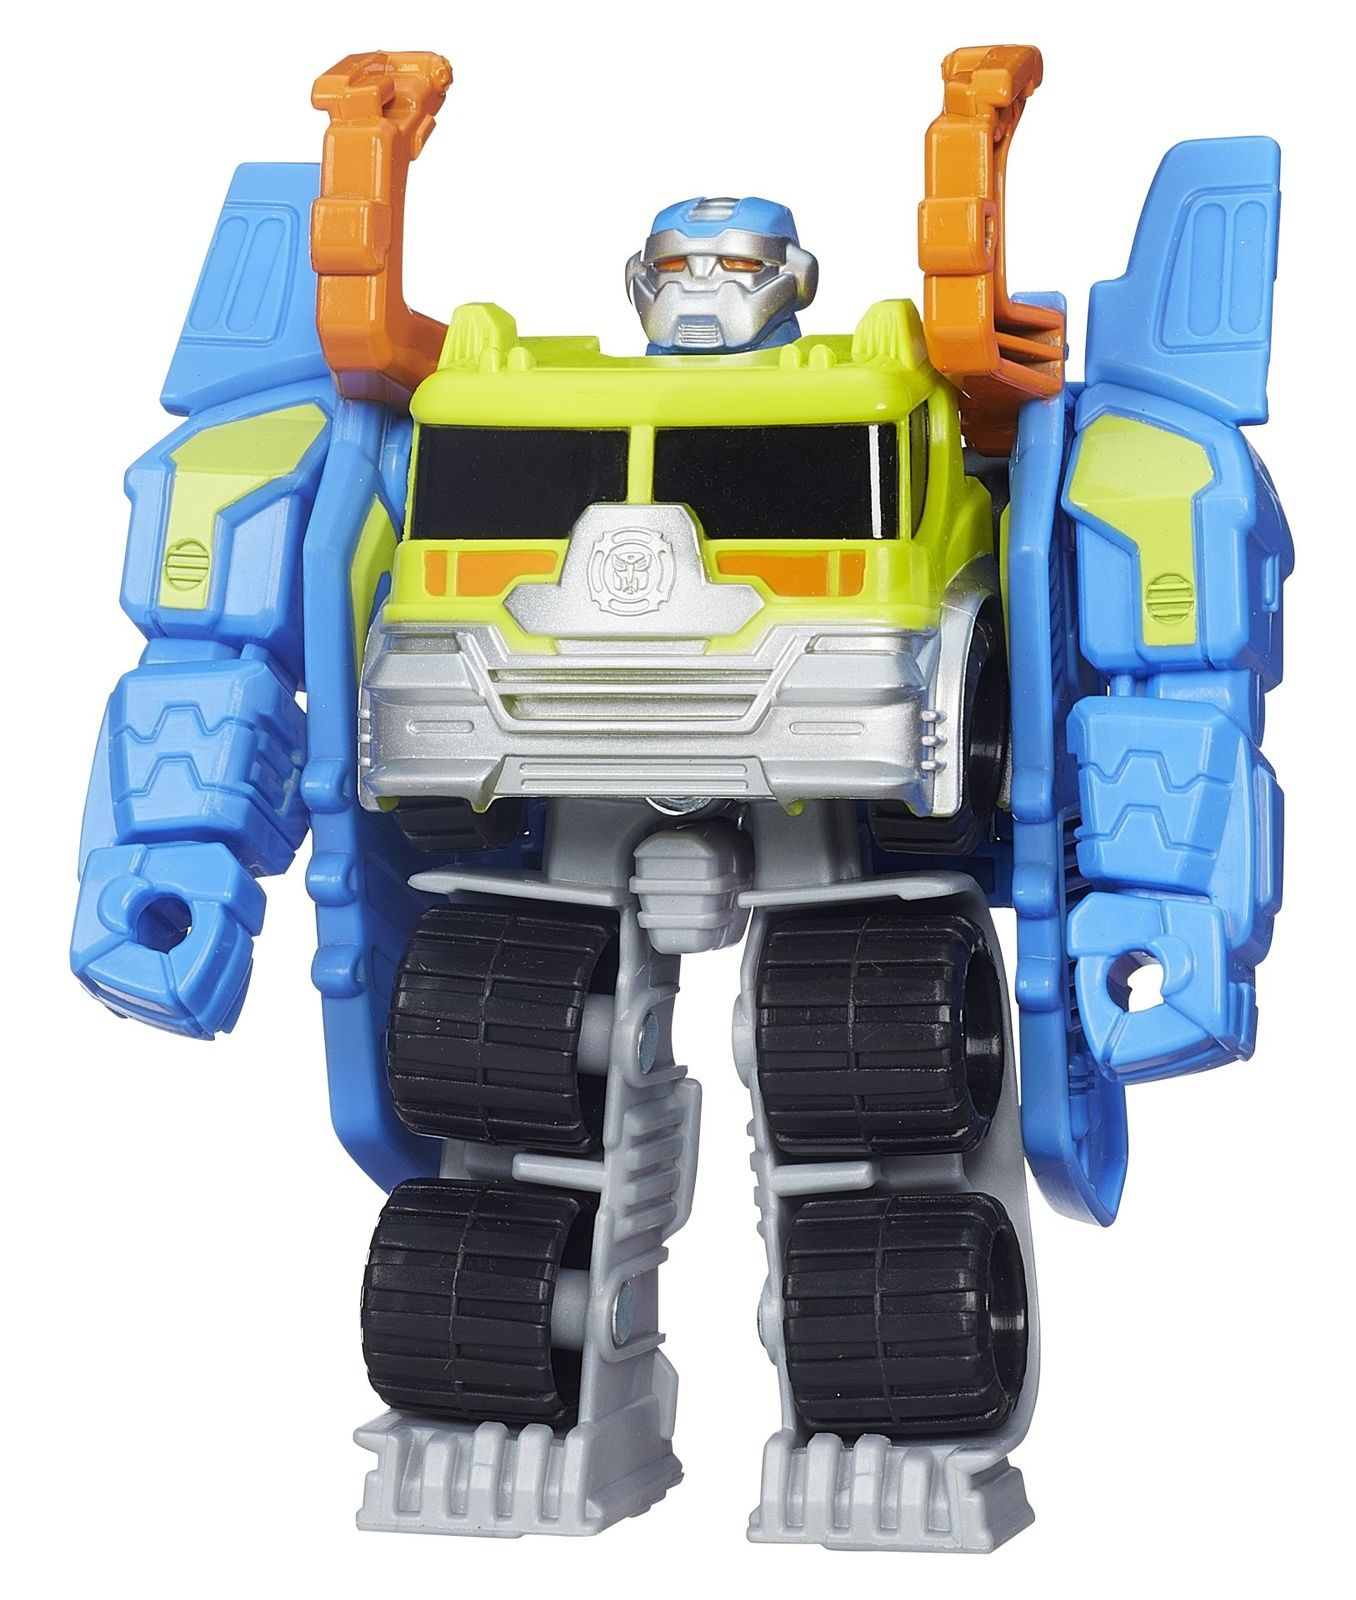 Transformers Rescue Bots Salvage Transformers Rescue Bots Rescue Bots Transformers